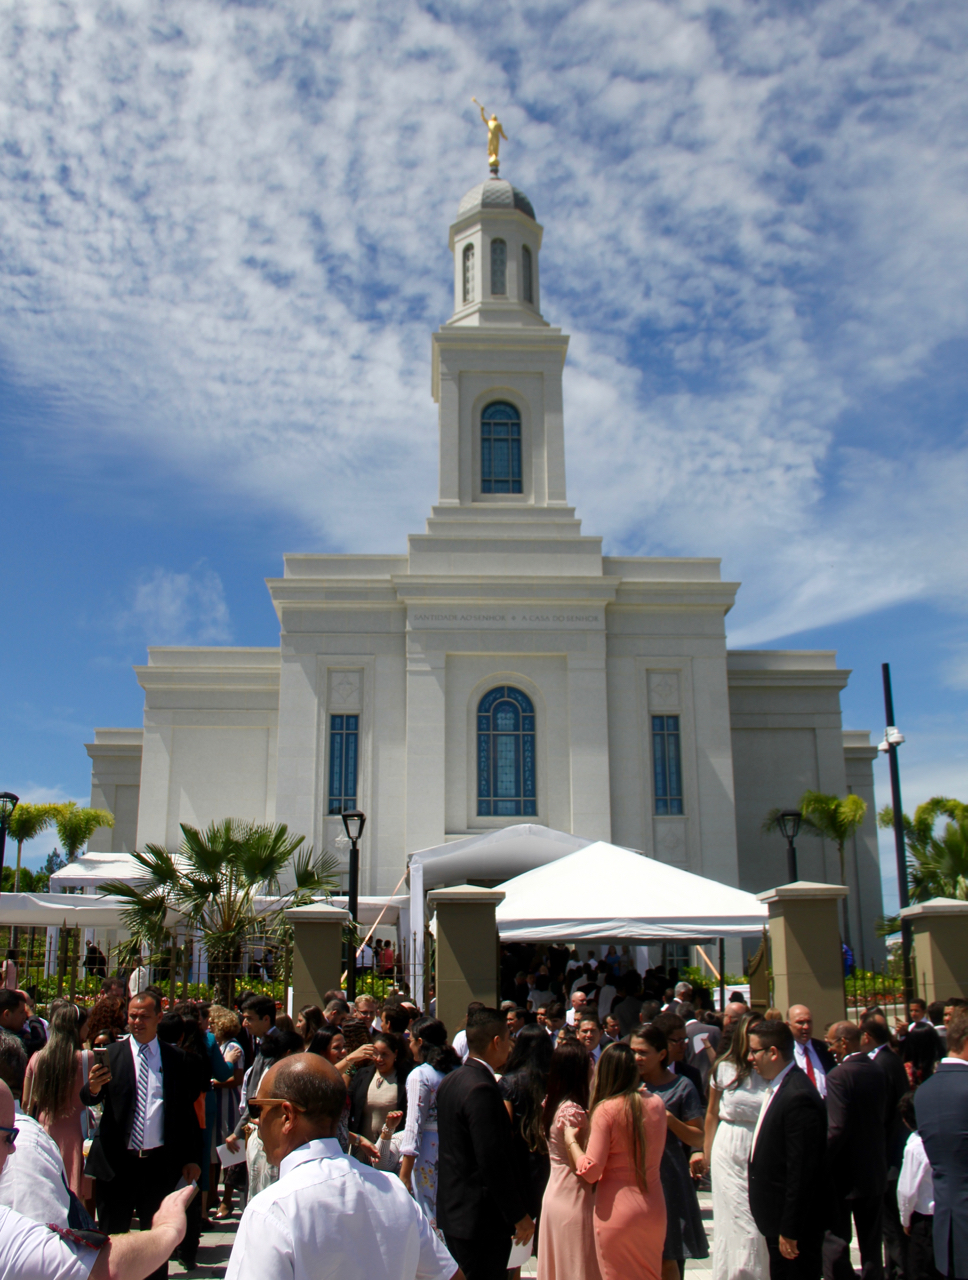 Latter-day Saints congregate outside the Brazil Fortaleza Temple as some exit one session and others line up for the next session on Sunday, June 2, 2019.